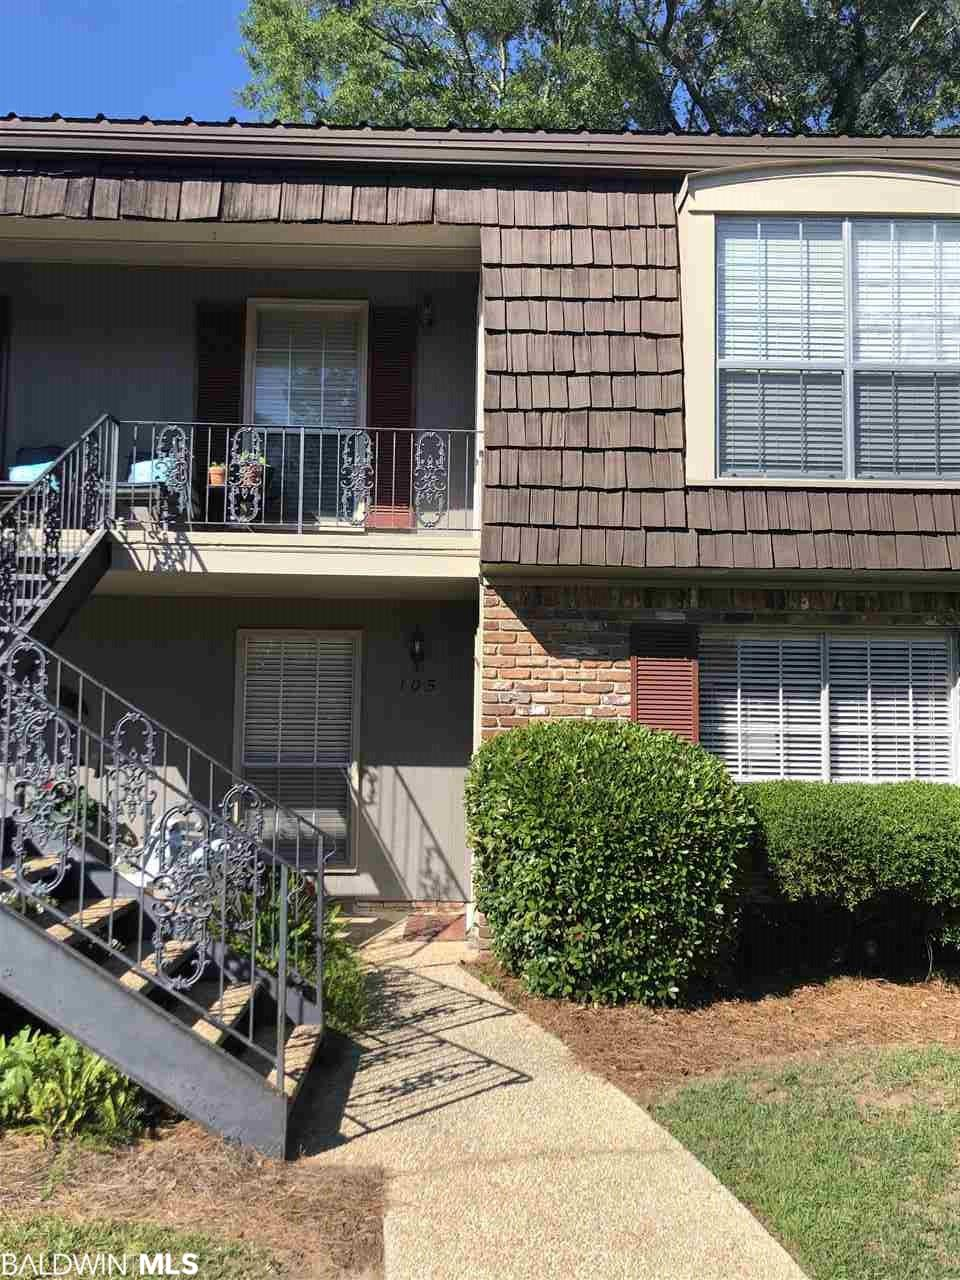 Cute condo with great view of beautiful common area. Close to downtown Fairhope and the Fairhope pier. Great location and move in ready!